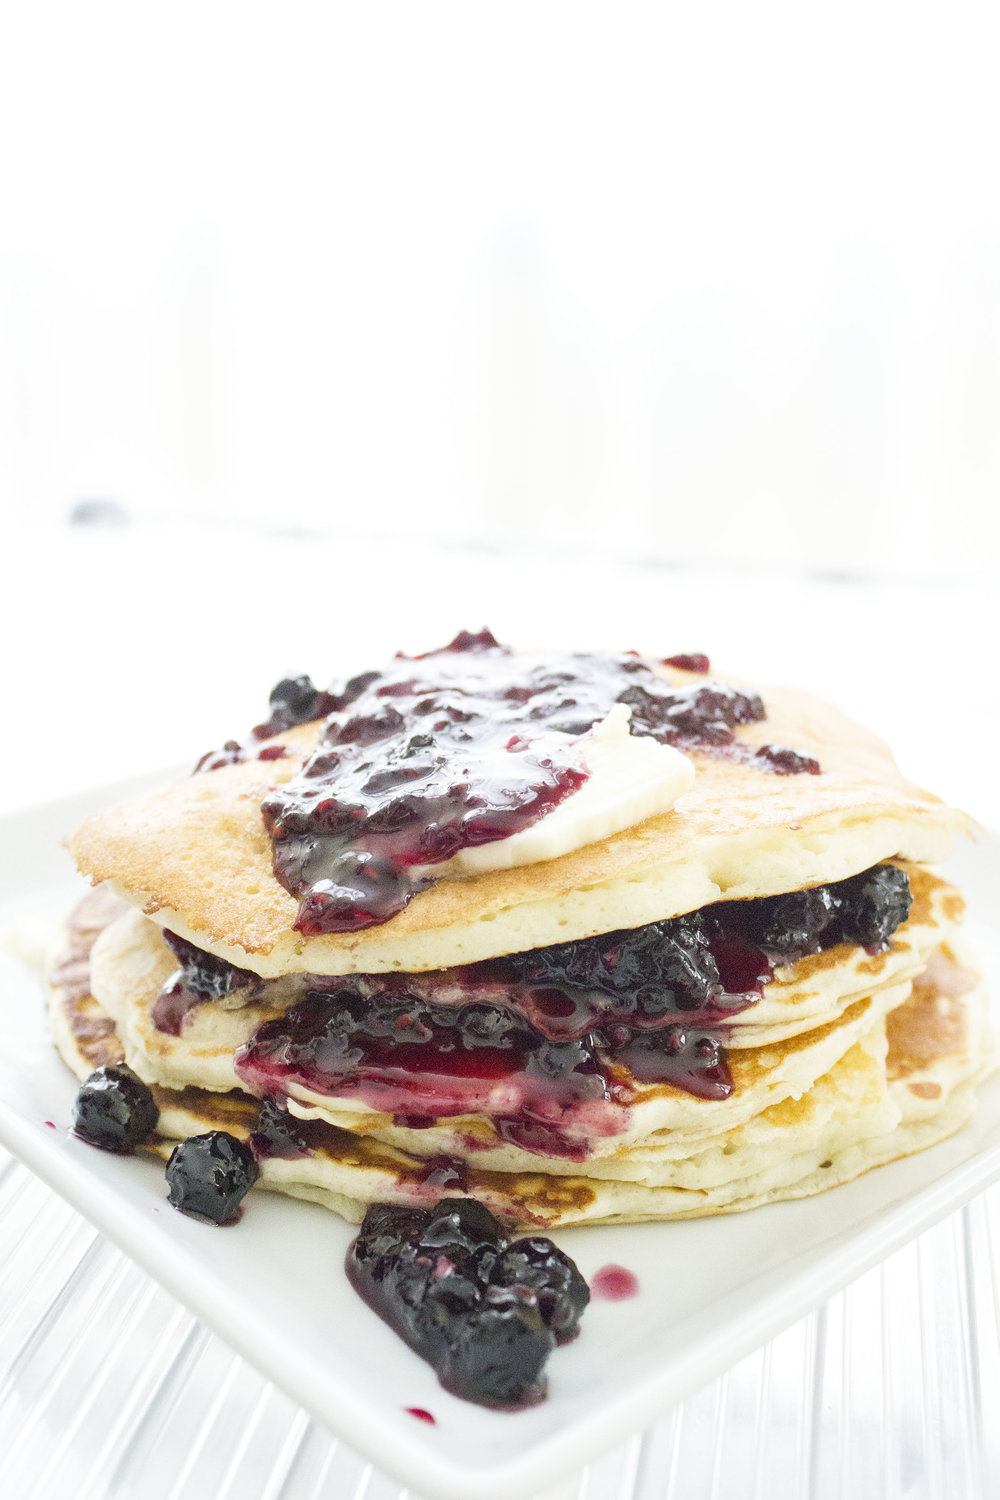 Fluffy VanillaPancakes - SHOP ALL | L.A. FARM GRL JAMS